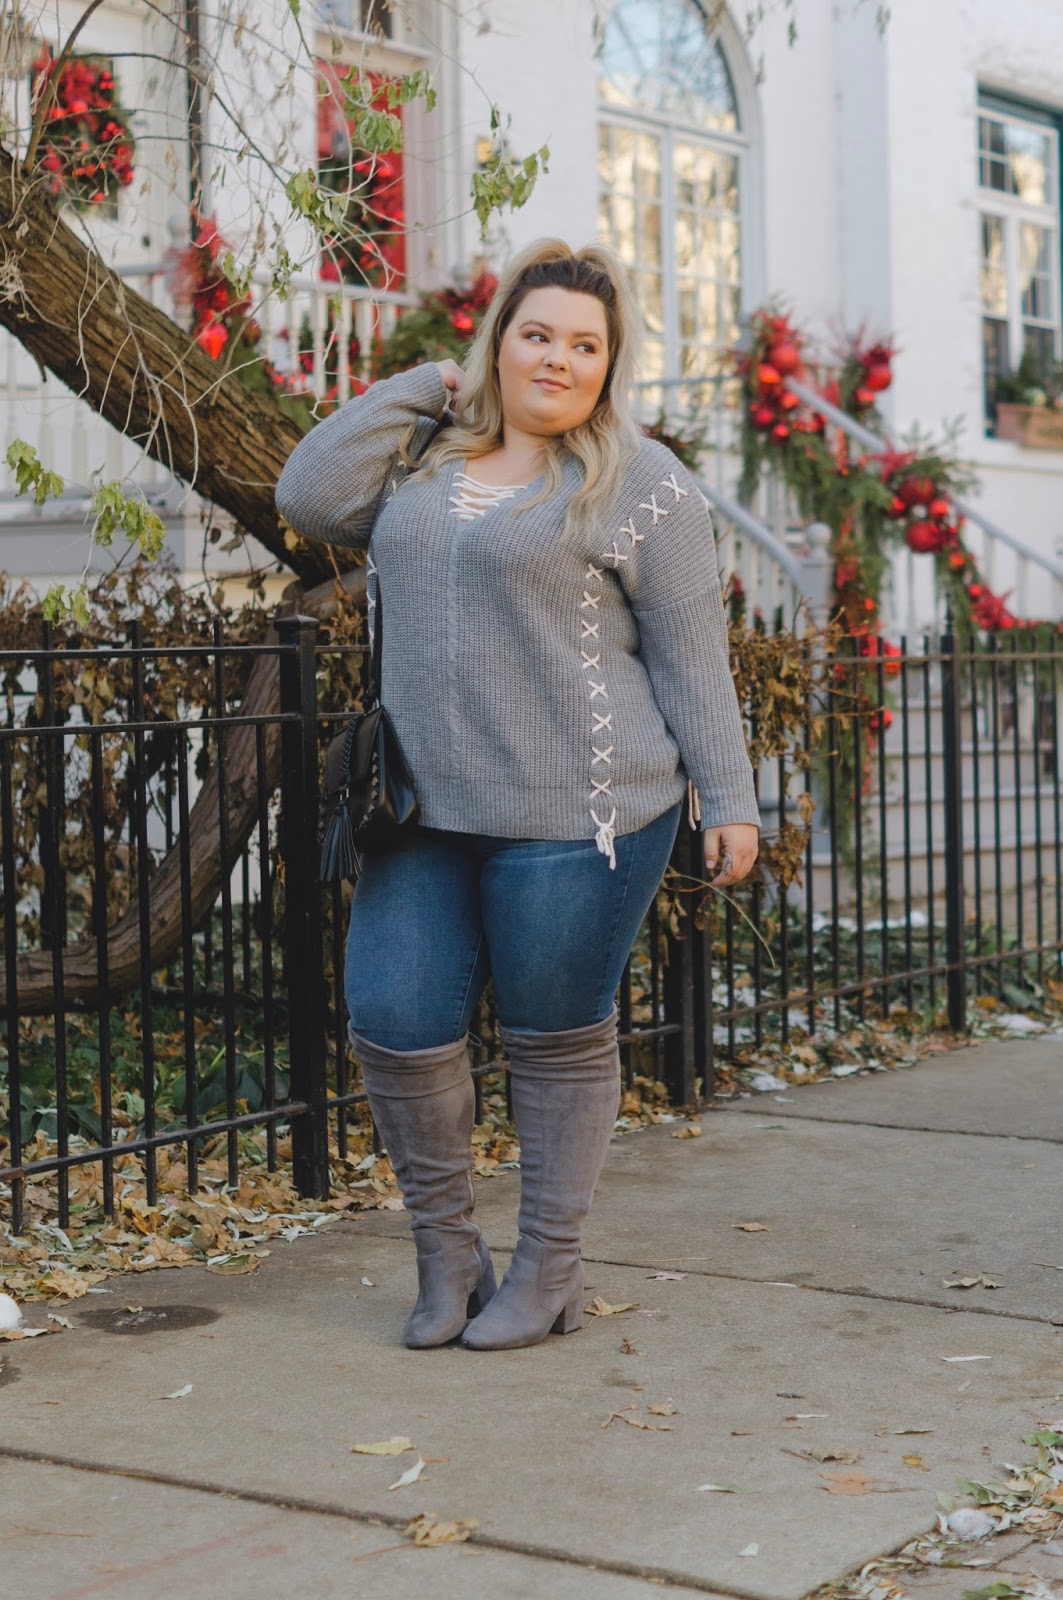 natalie in the city, Chicago model, Chicago fashion blogger, plus size fashion blogger, plus size style, plus model magazine, eff your beauty standards, embrace my curves, Charlotte Russe plus, tummy control jeans, affordable plus size fashion for women, wide calf knee high boots, faux suede wide calf boots, wide calf sock boots